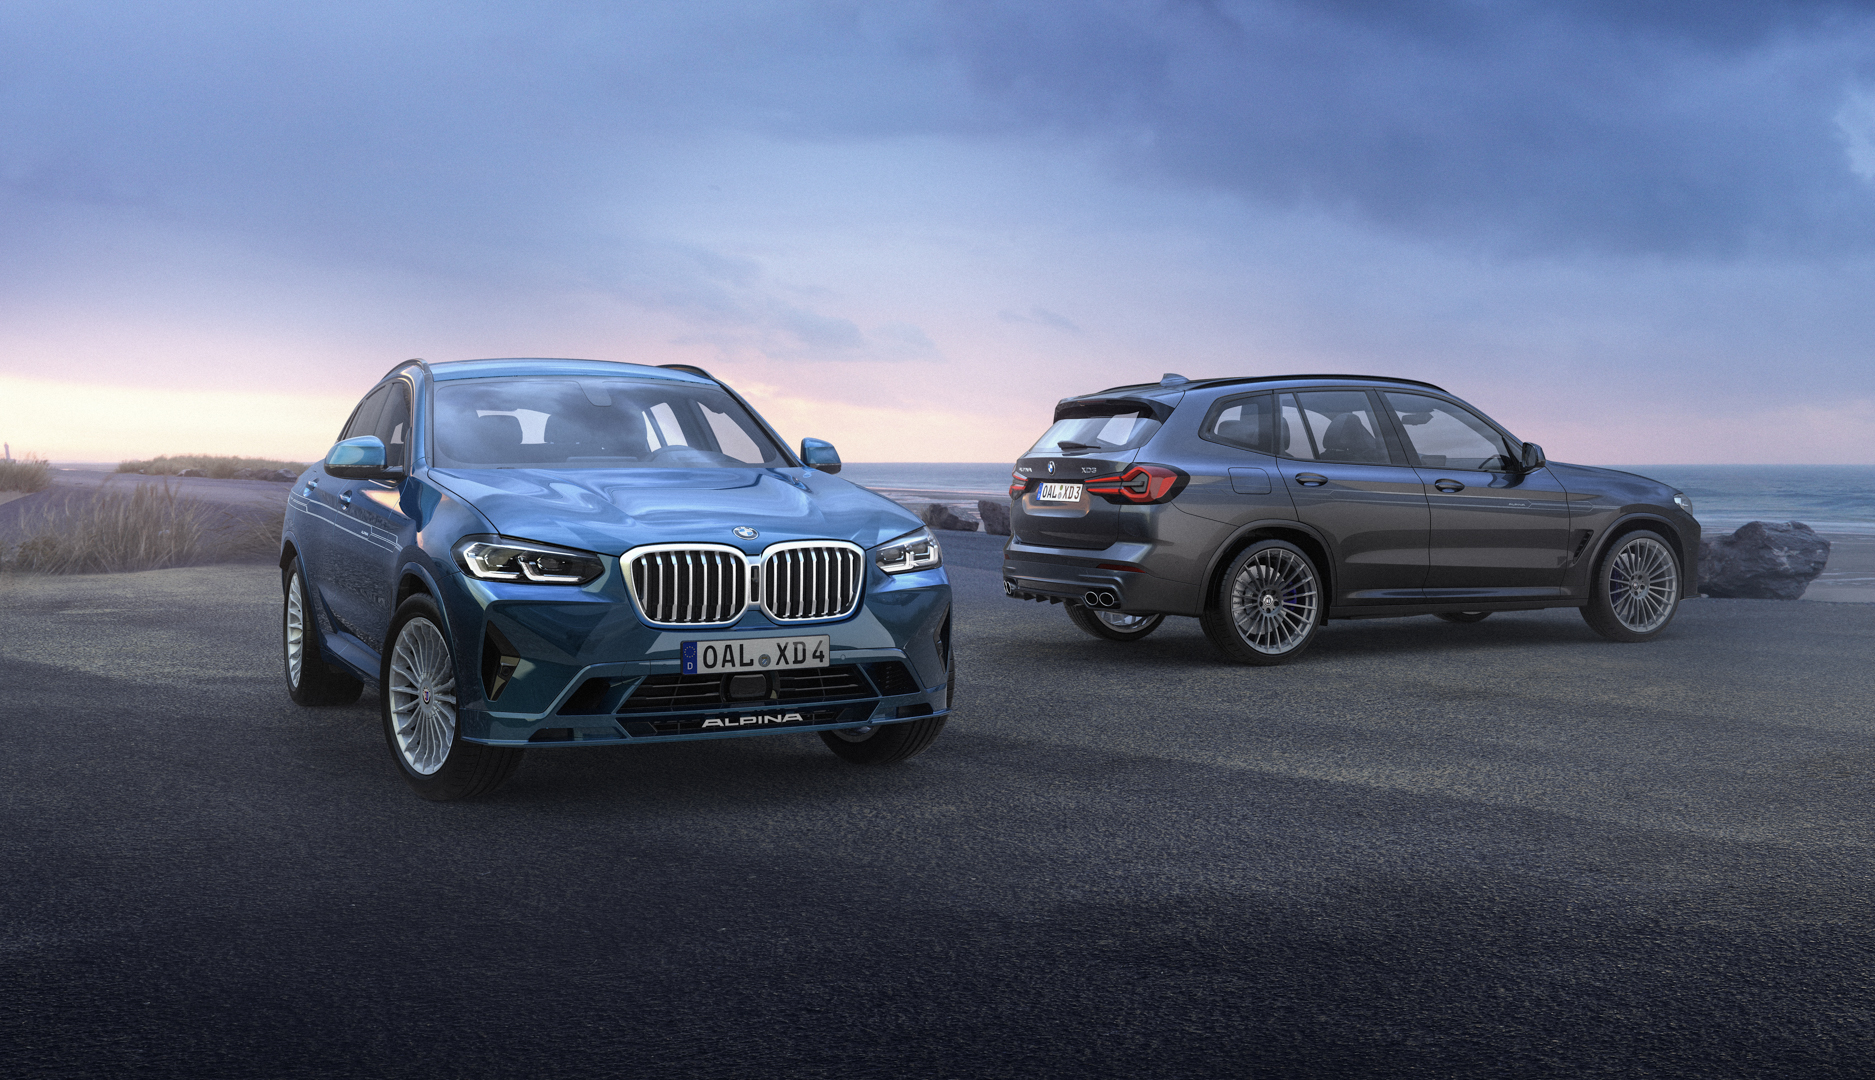 ALPINA XD3 and XD4 3 of 4